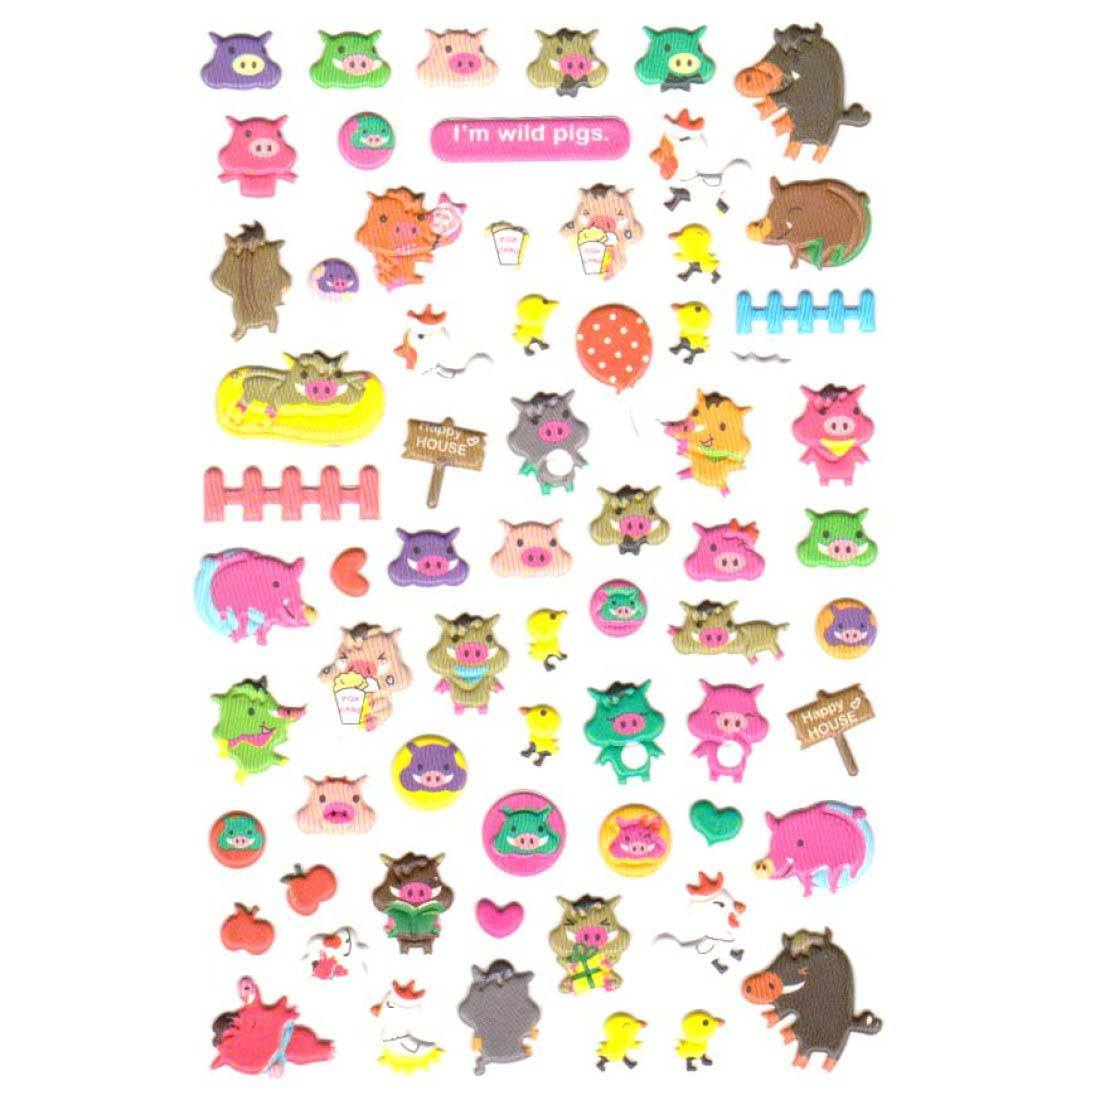 Wild Boar Piggy Piglets Themed Puffy Stickers for Kids